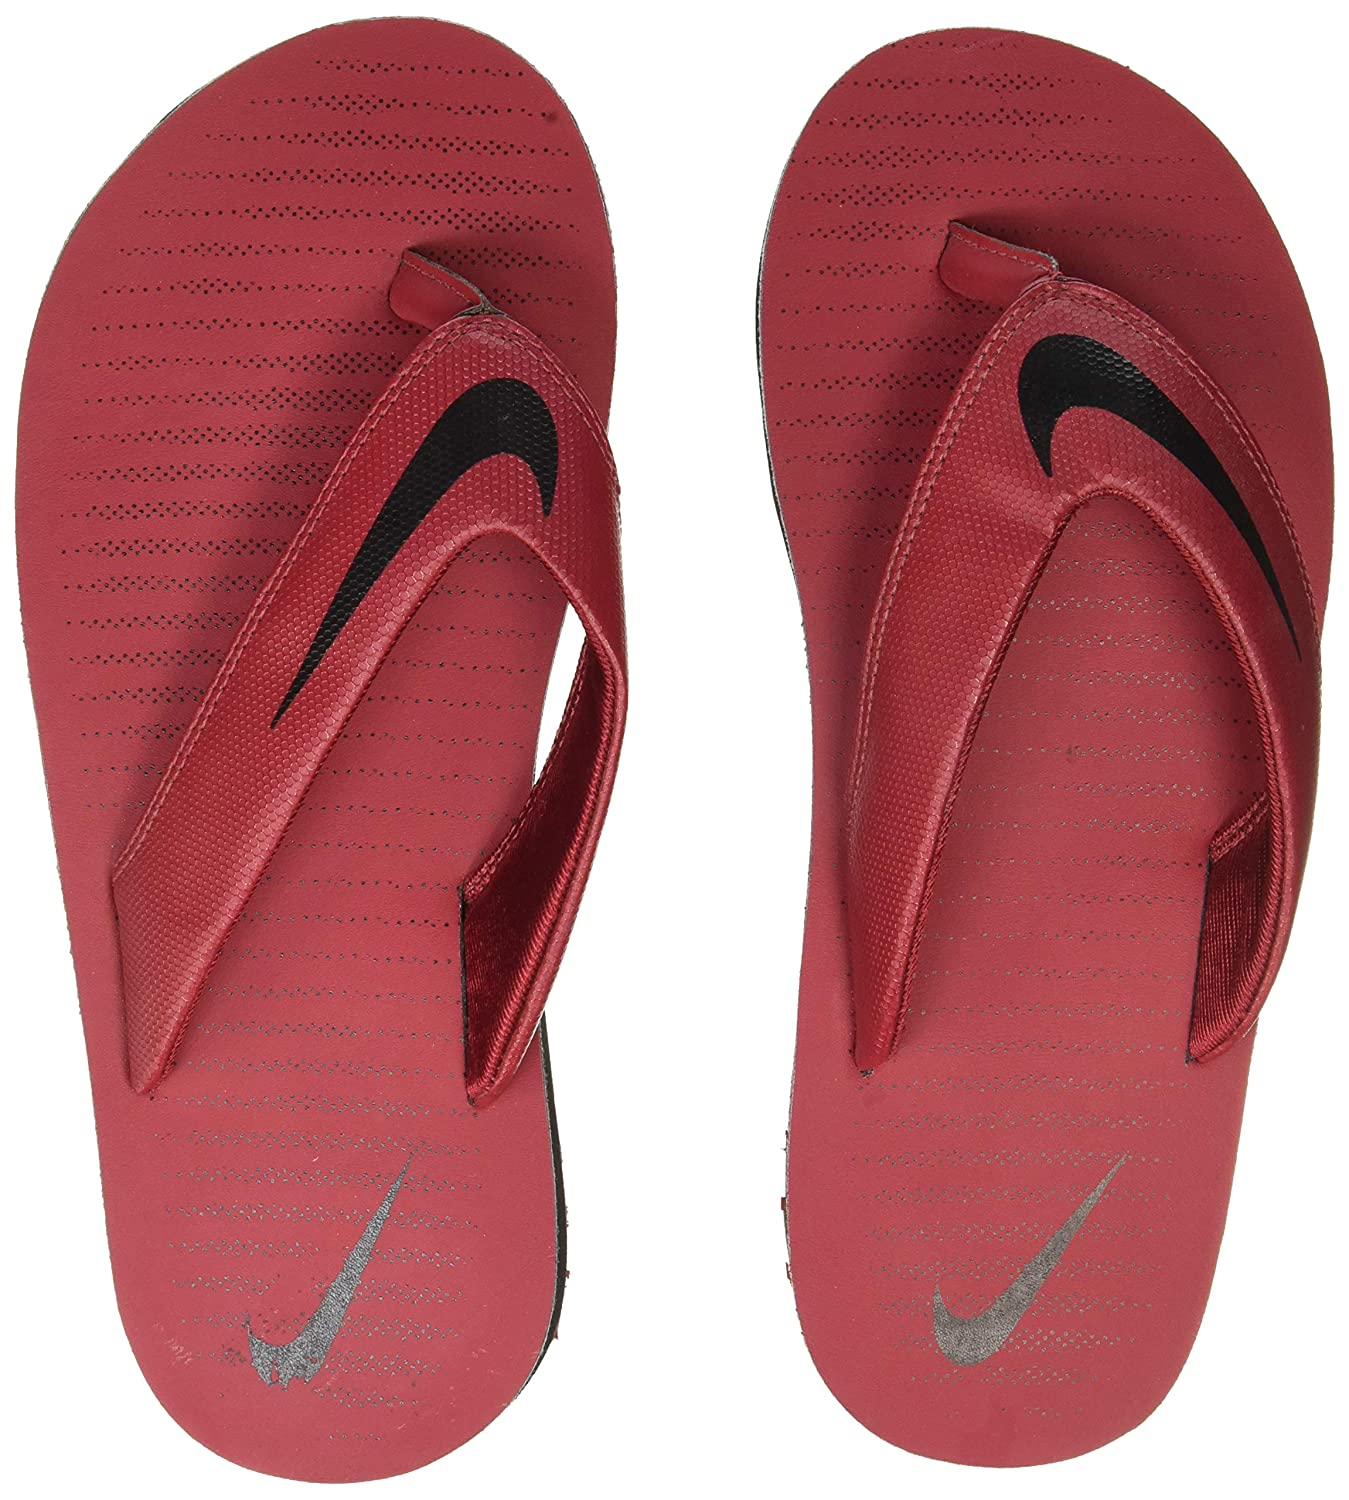 7769c60e5fa Nike Men s Flip Flops Thong Sandals  Buy Online at Low Prices in India -  Amazon.in